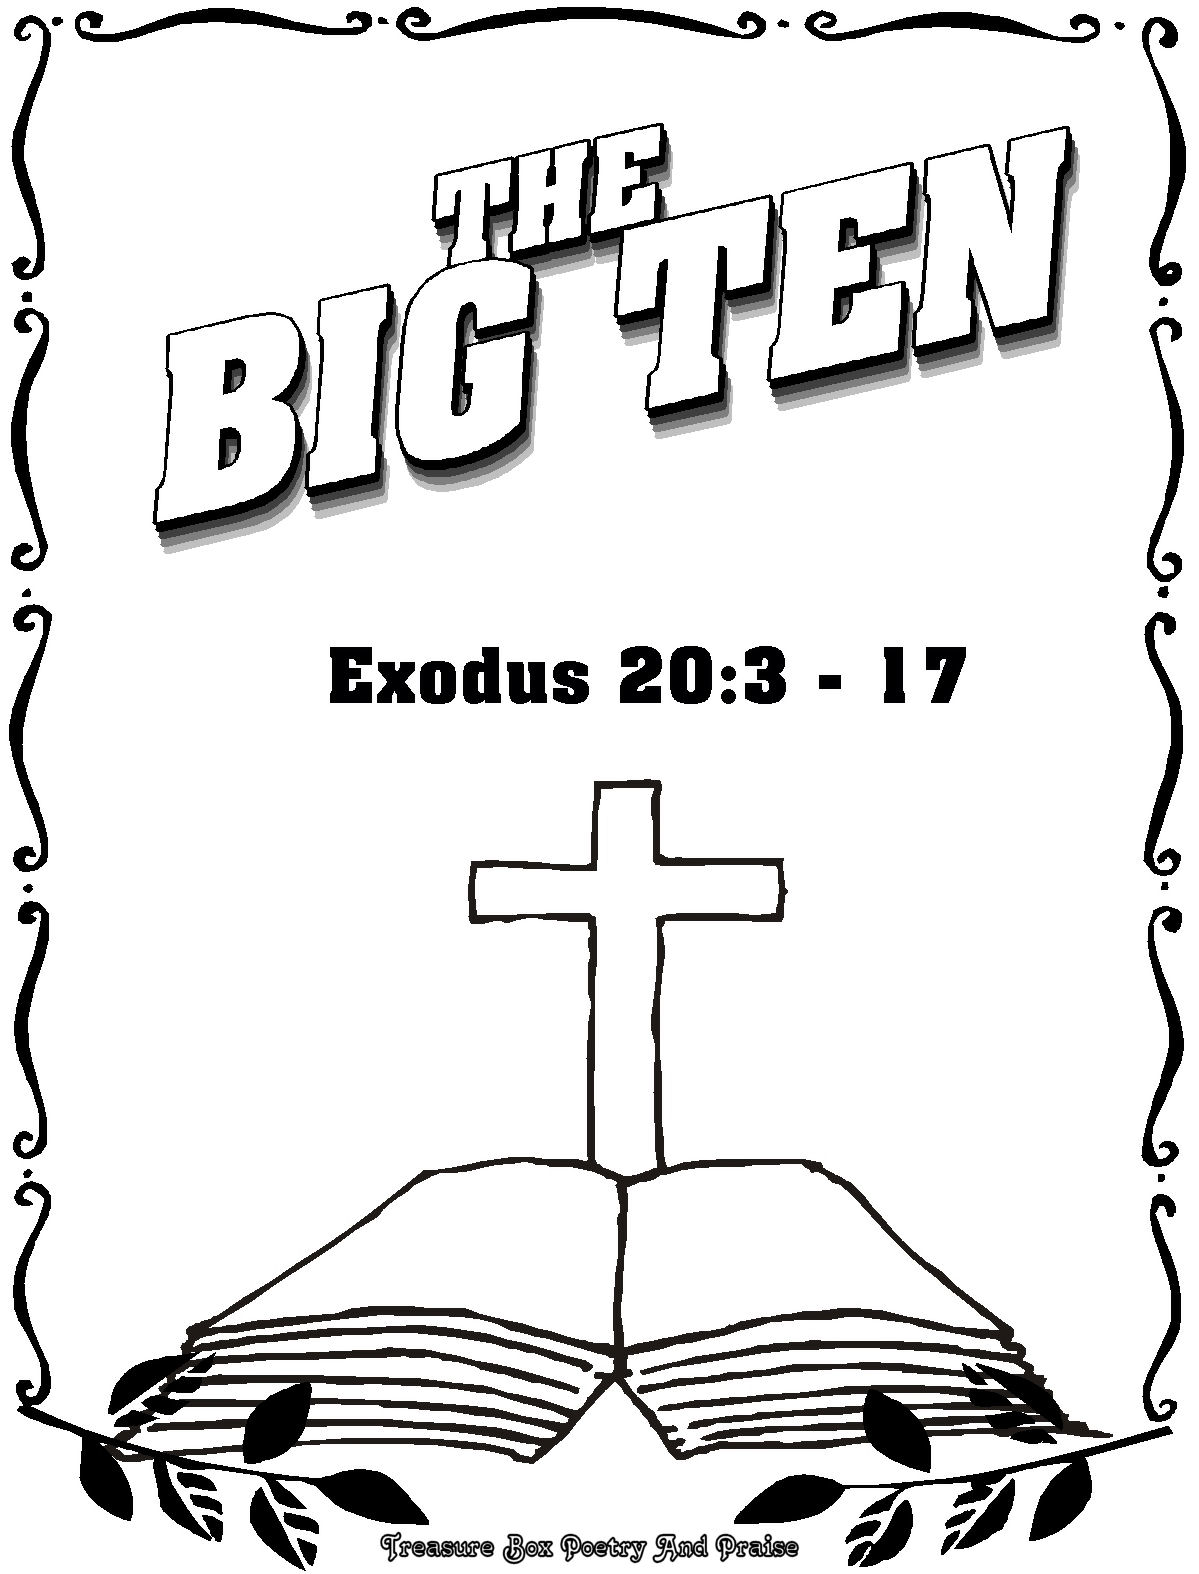 Adult Top 10 Commandments Coloring Page Gallery Images beauty ten commandments coloring pages az childrens gems in my treasure box the big book images